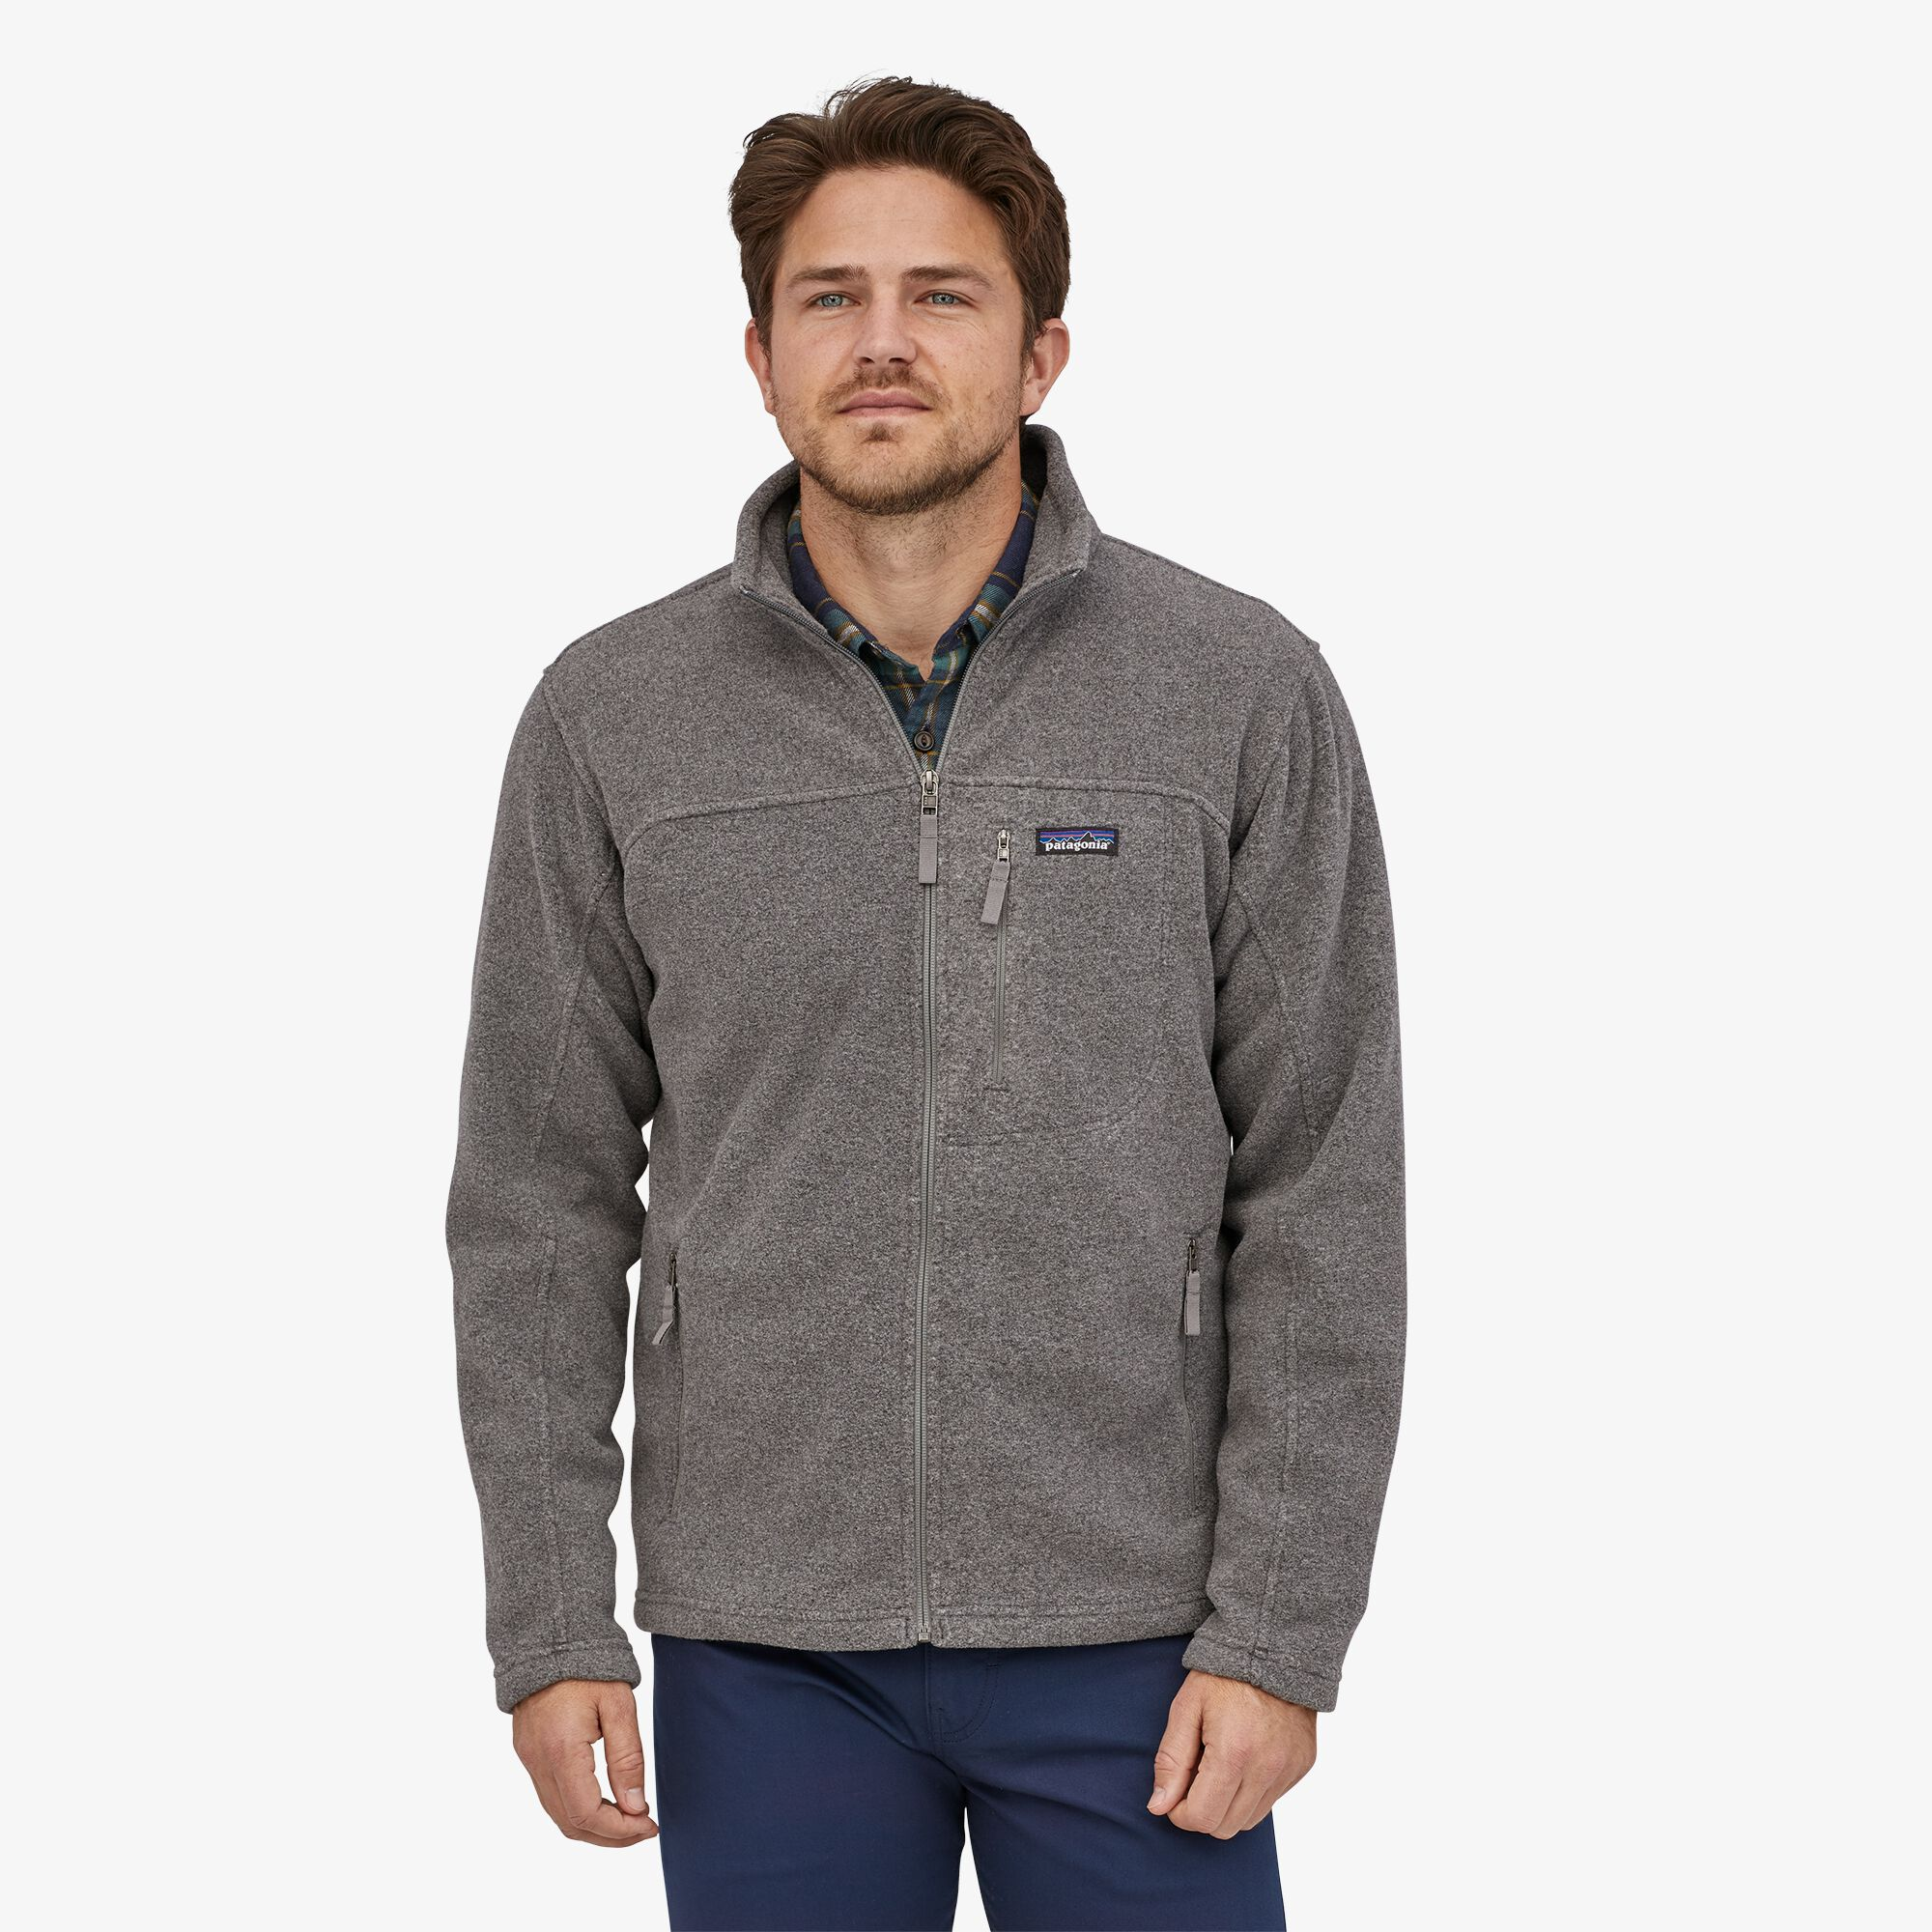 Patagonia - M's Classic Synchilla Fleece Jacket - Weekendbee - sustainable sportswear